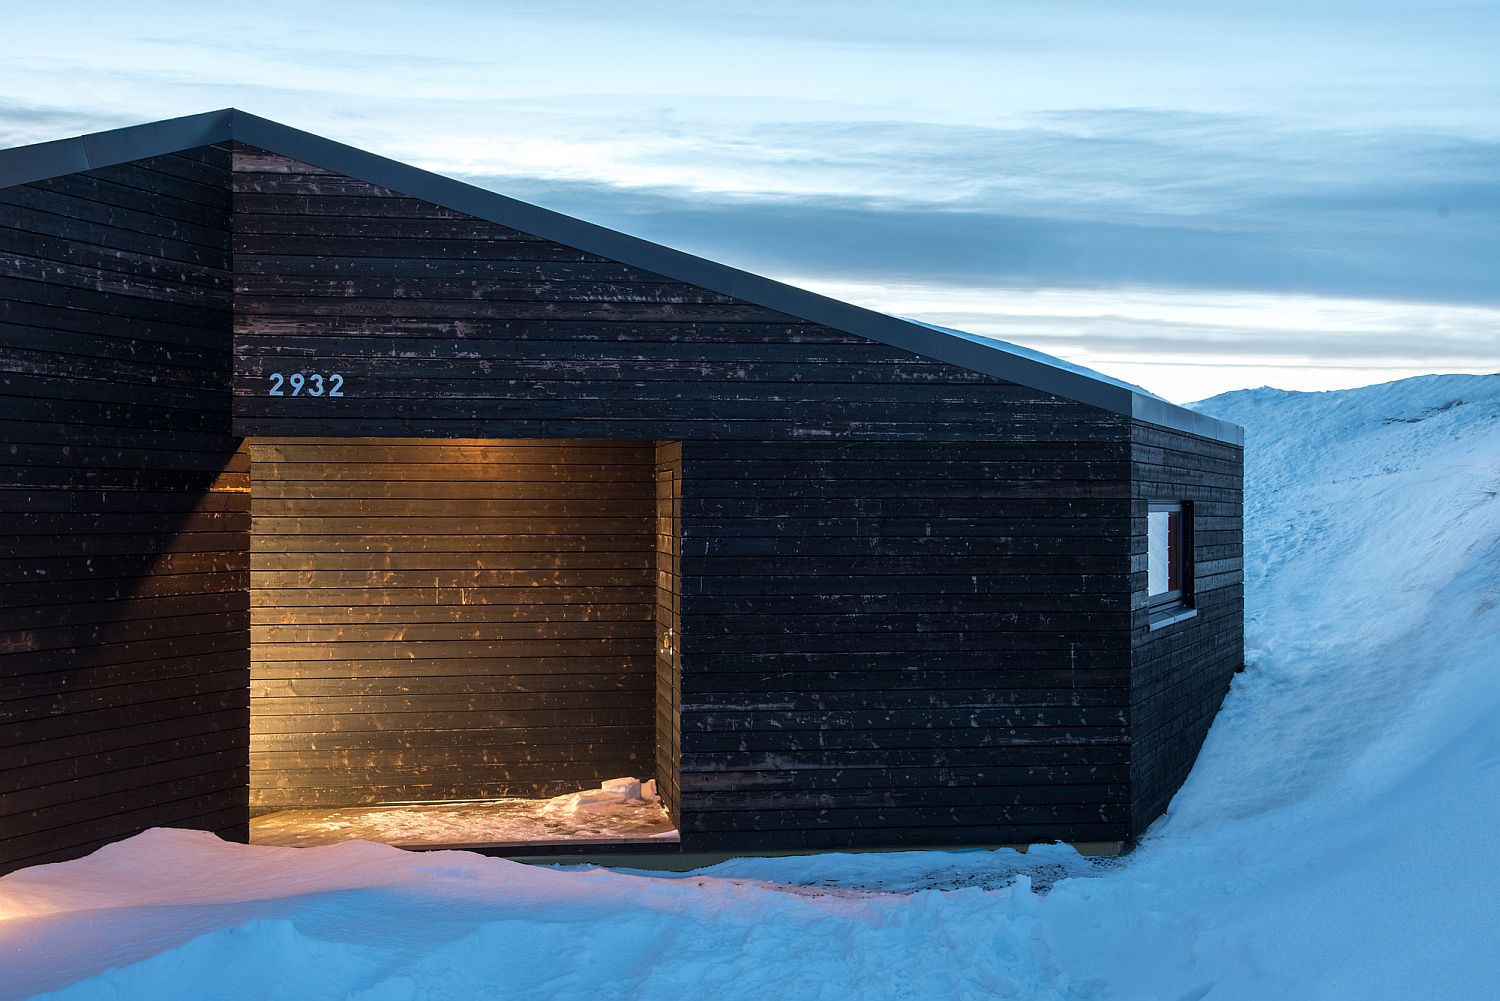 Lovely Norwegian cabin with dark exterior stands out visually